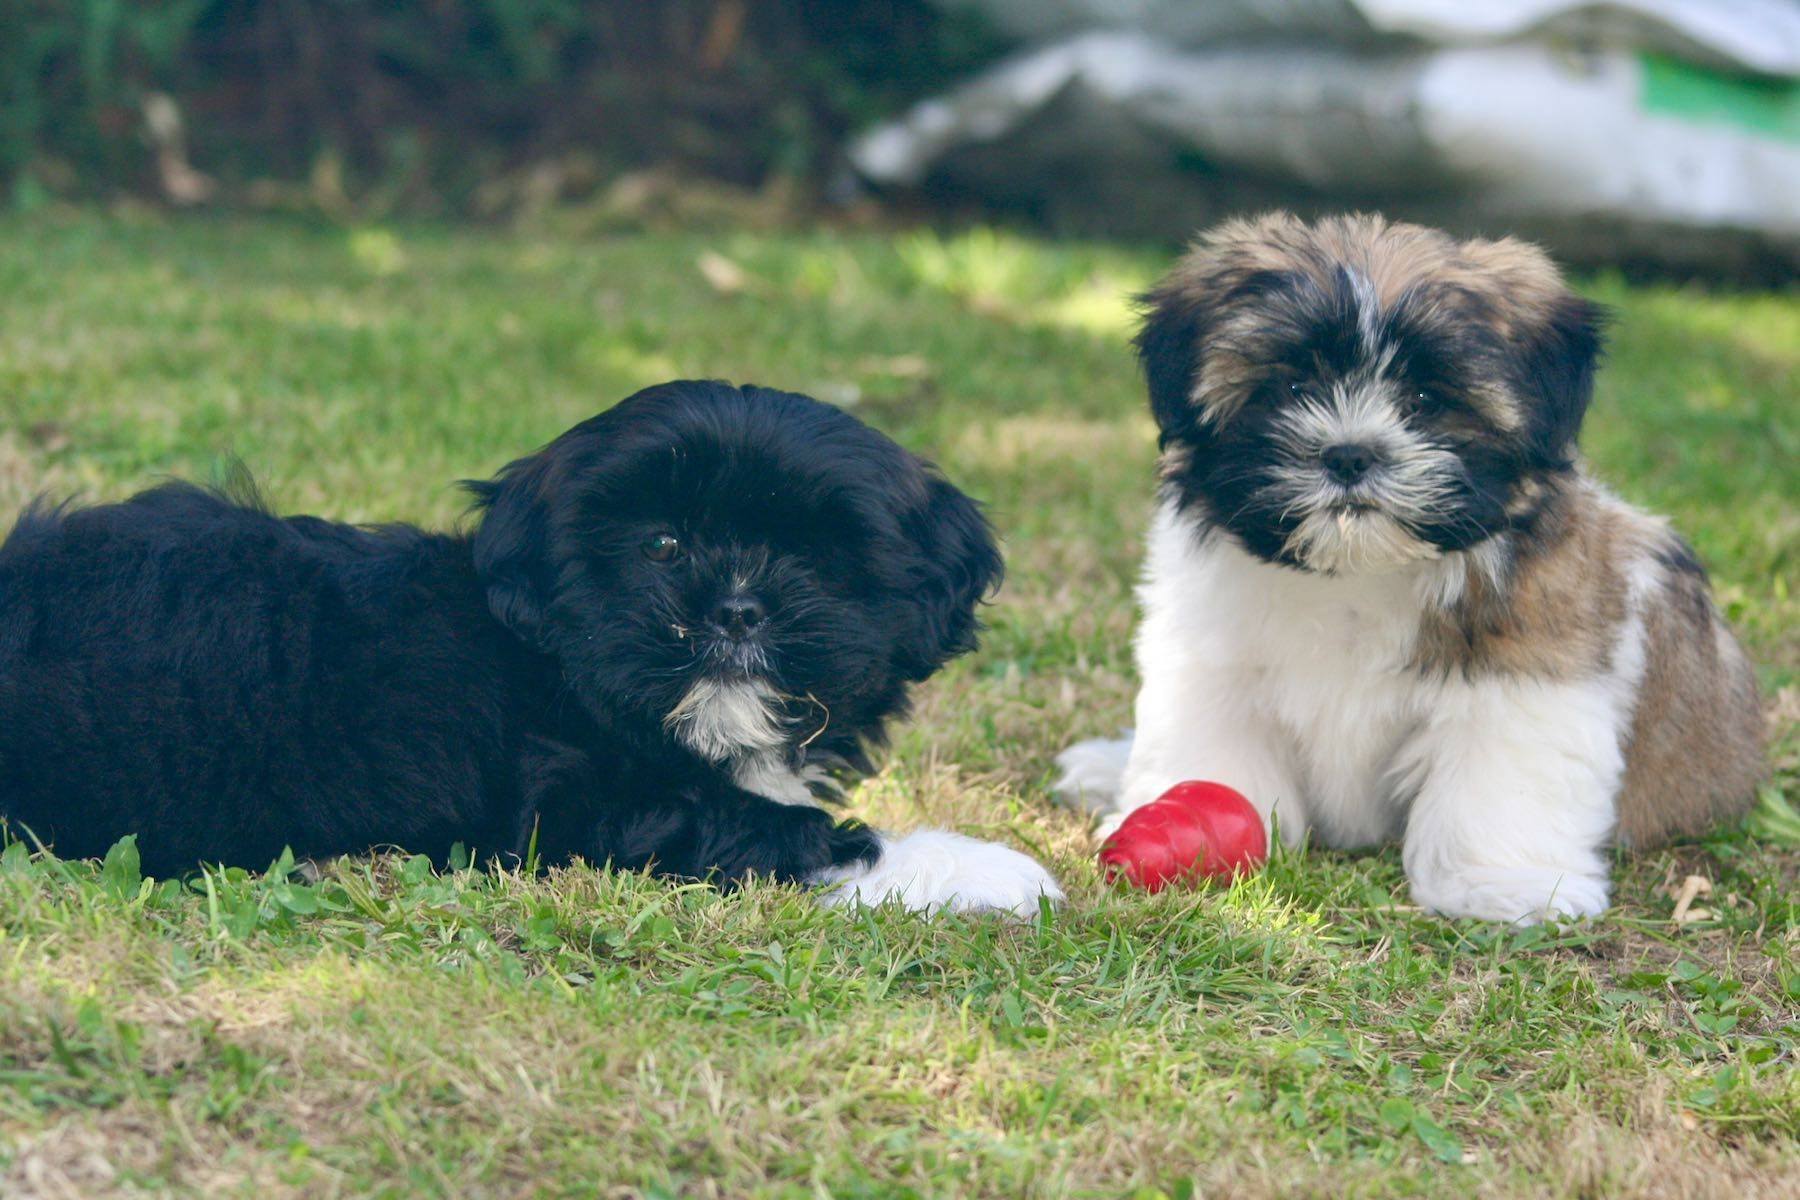 Two puppies on the grass.